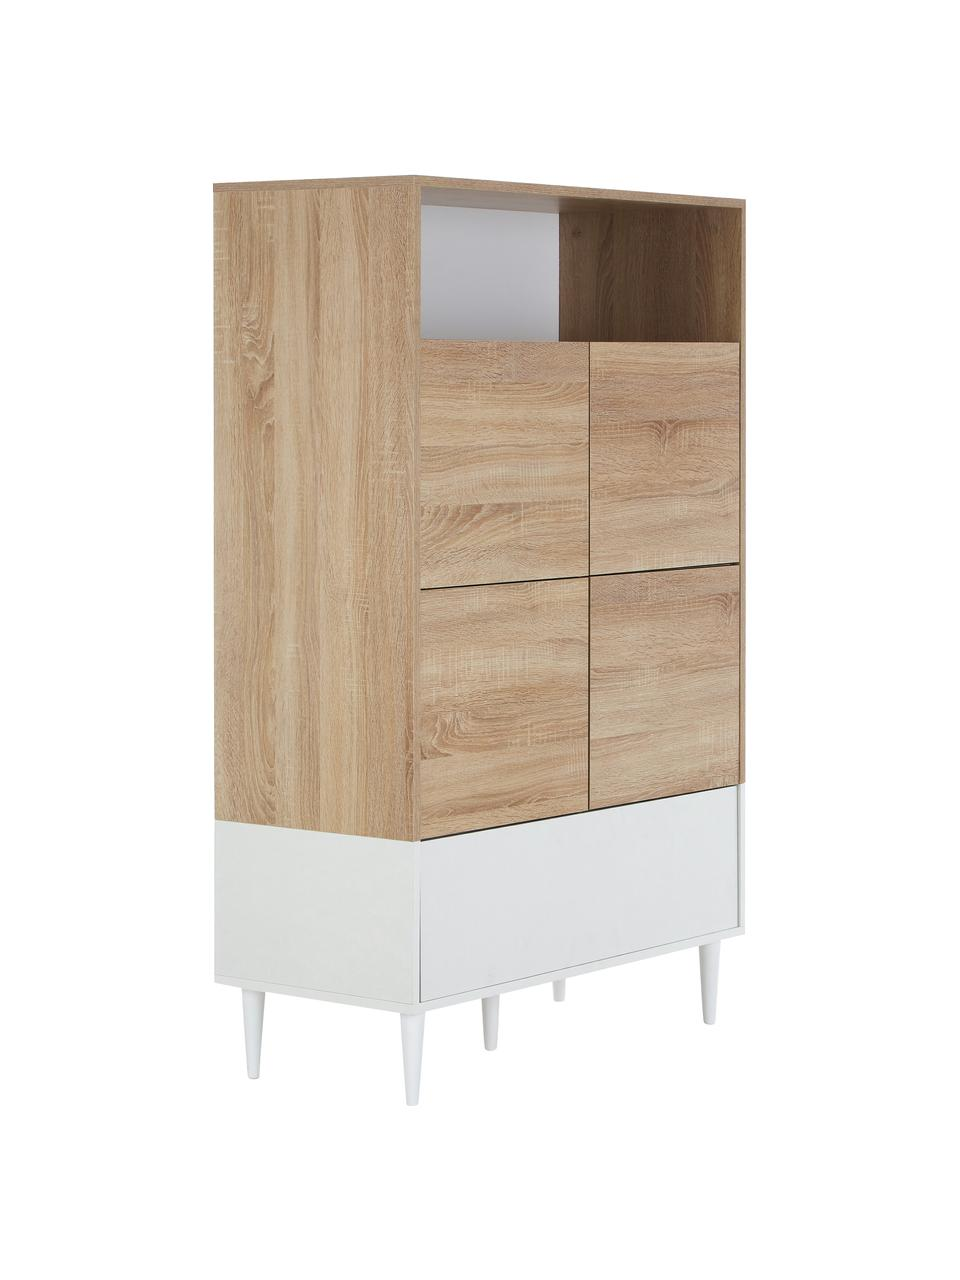 Hoge highboard Horizon in Scandinavisch design en deuren, Frame: melamine gecoate spaanpla, Poten: gelakt massief beukenhout, Eikenhoutkleurig, wit, 90 x 141 cm